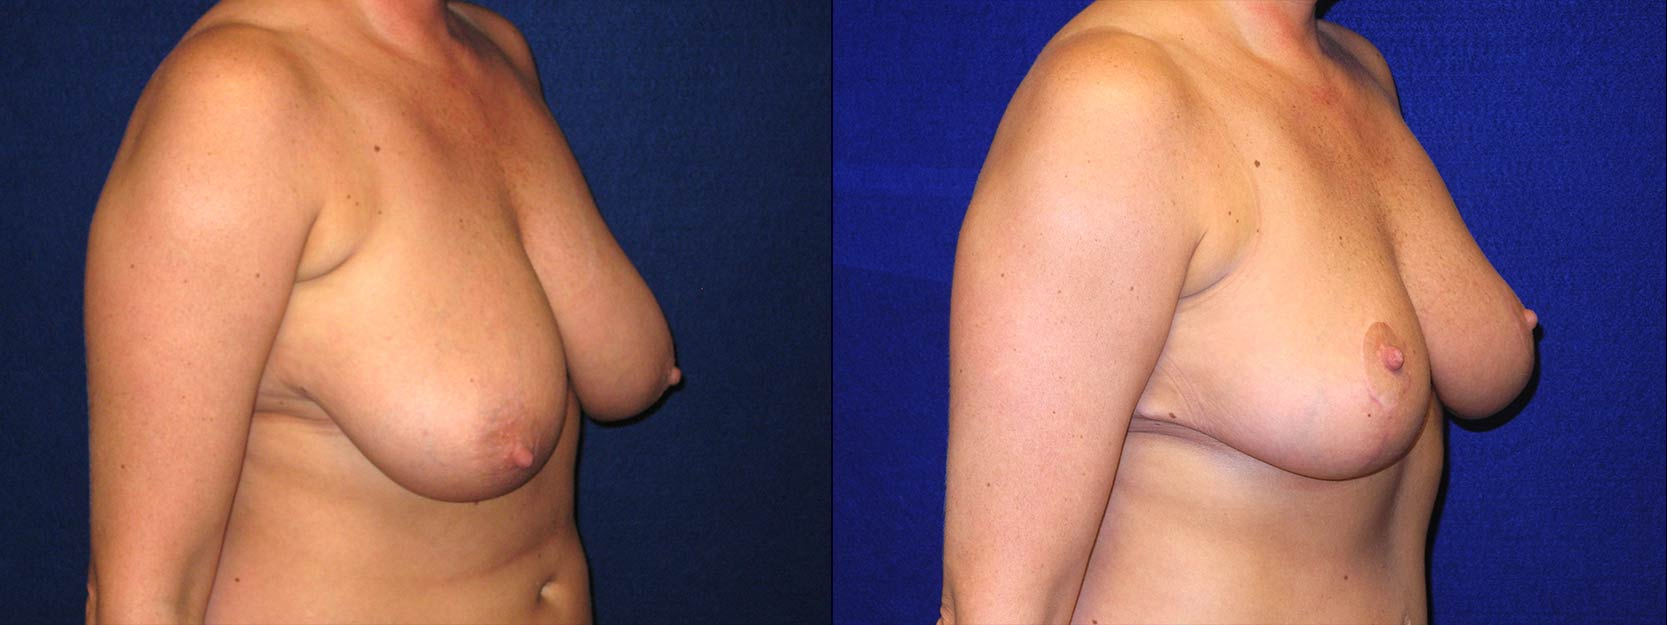 Right 3/4 View - Breast Reduction